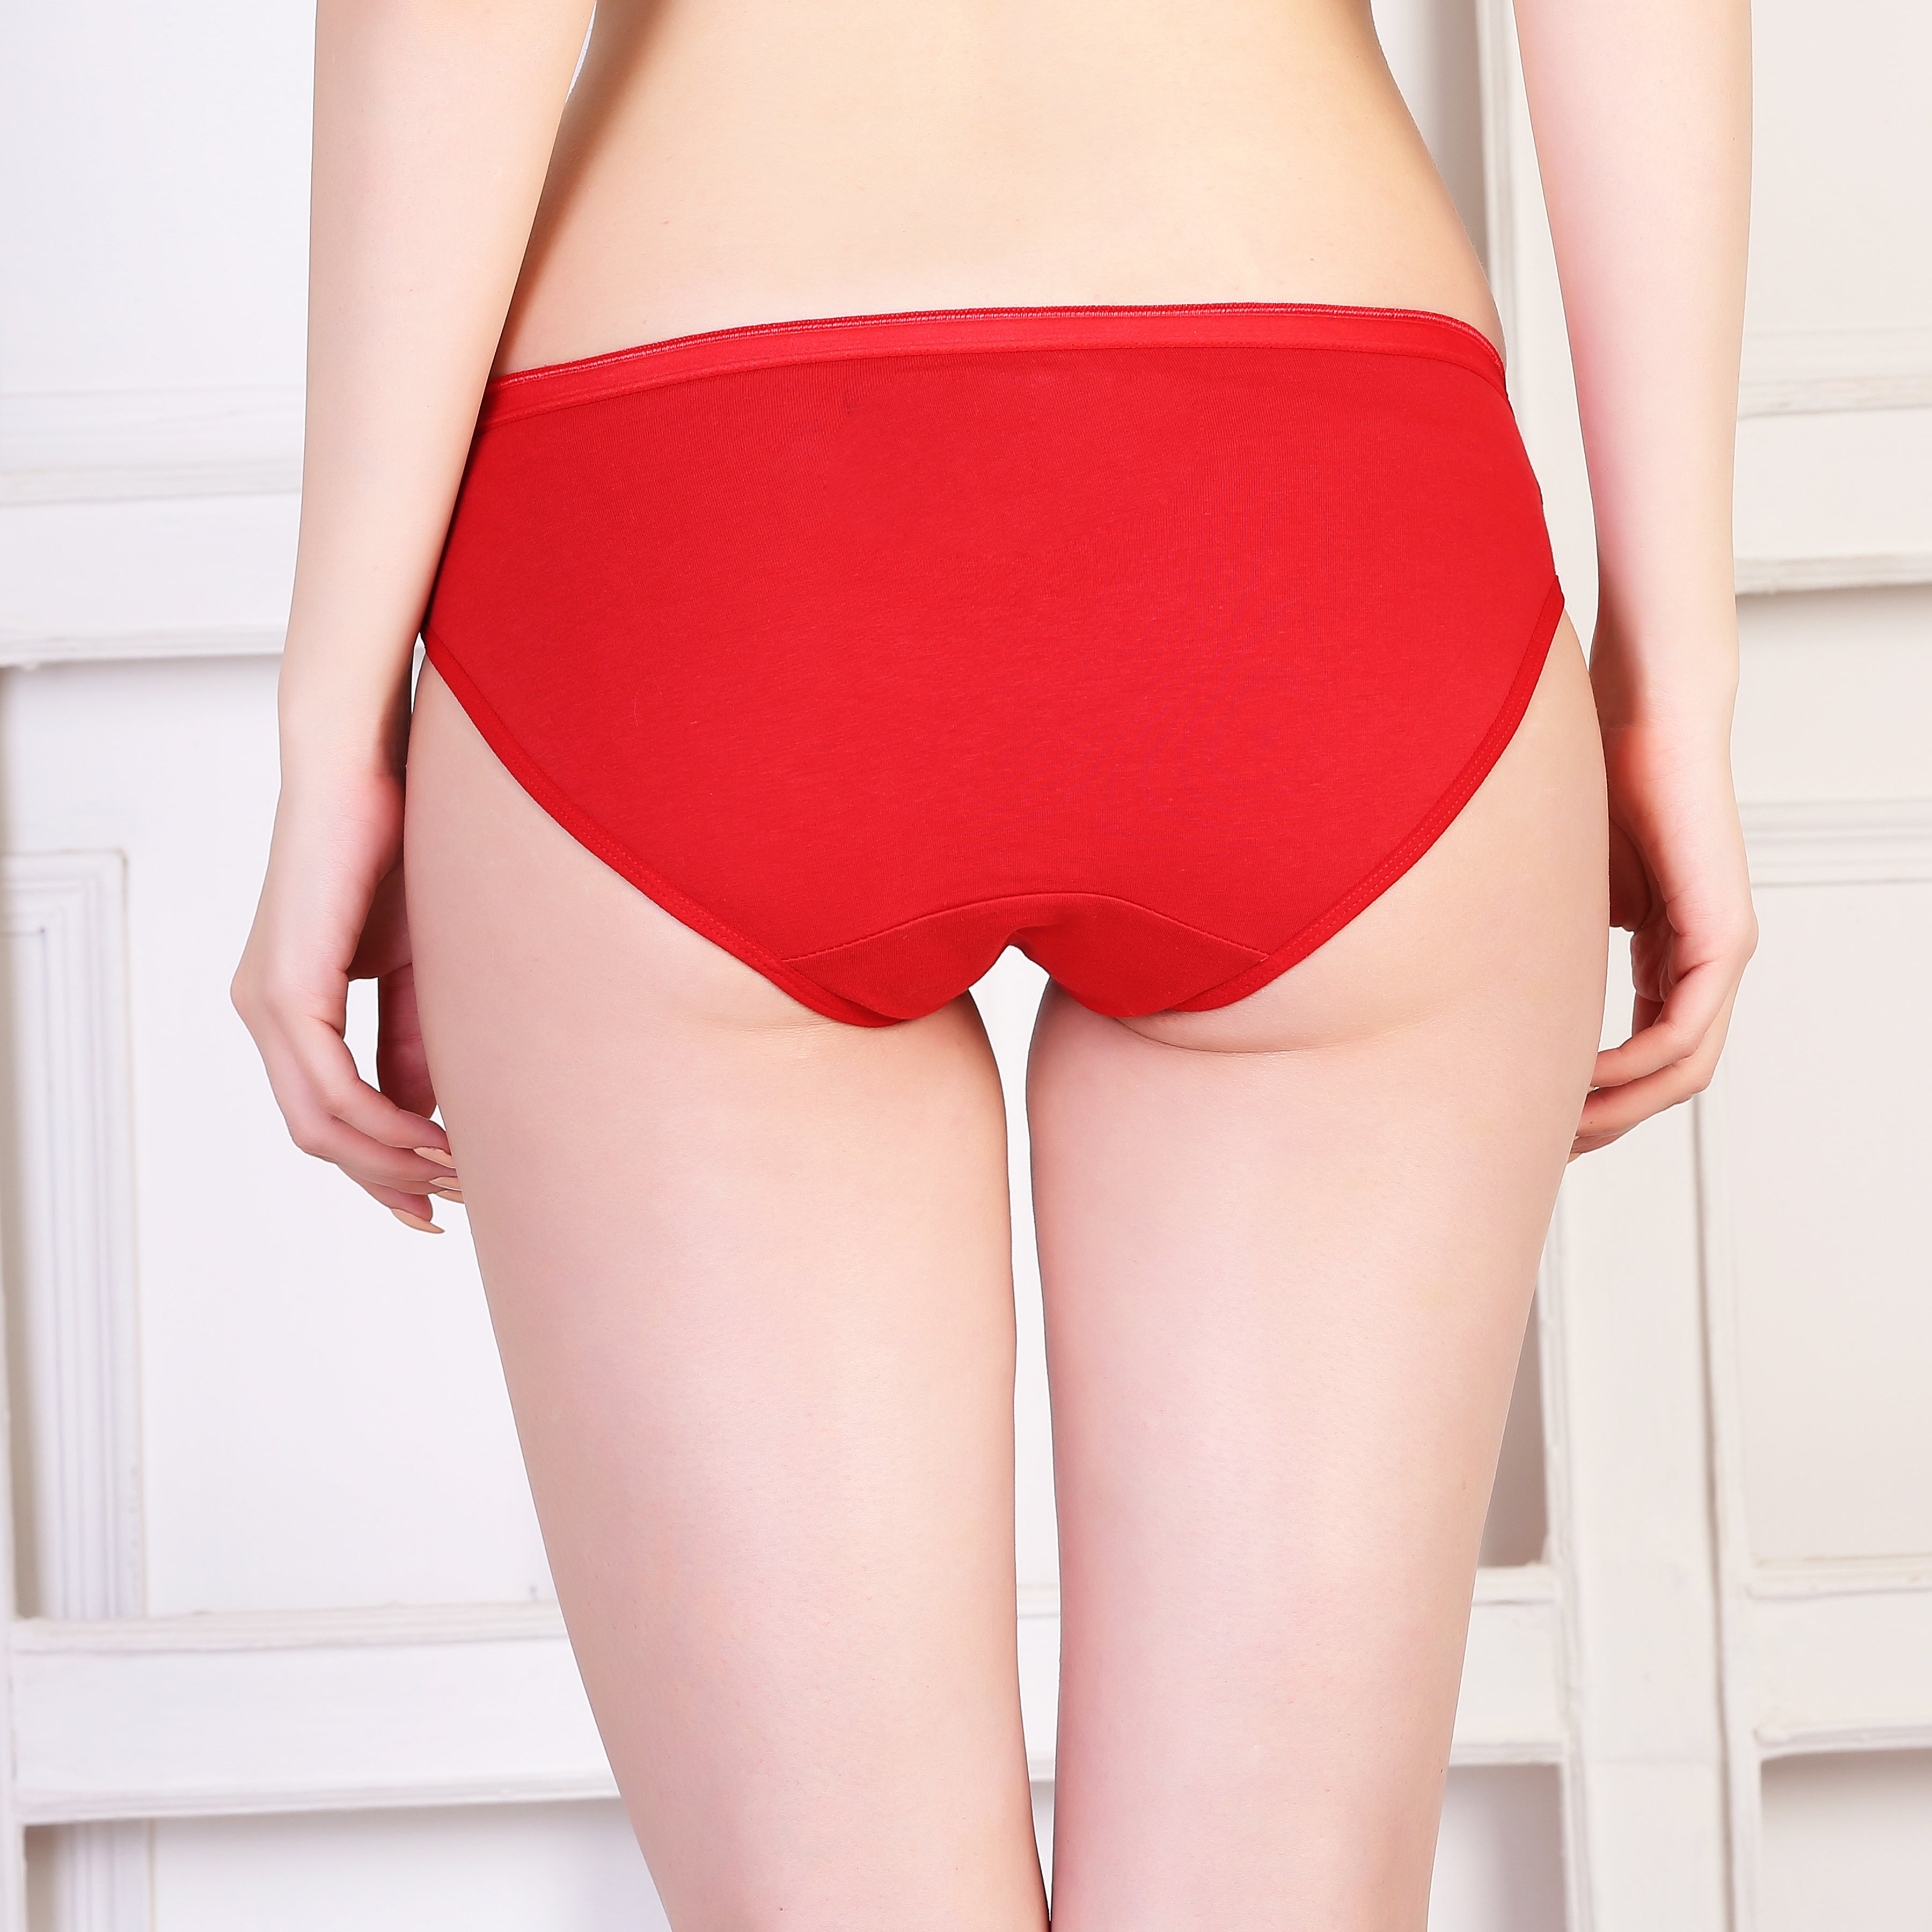 Ficuster Red Black Low Rise Cotton Bikini Panty (Pack of 2)